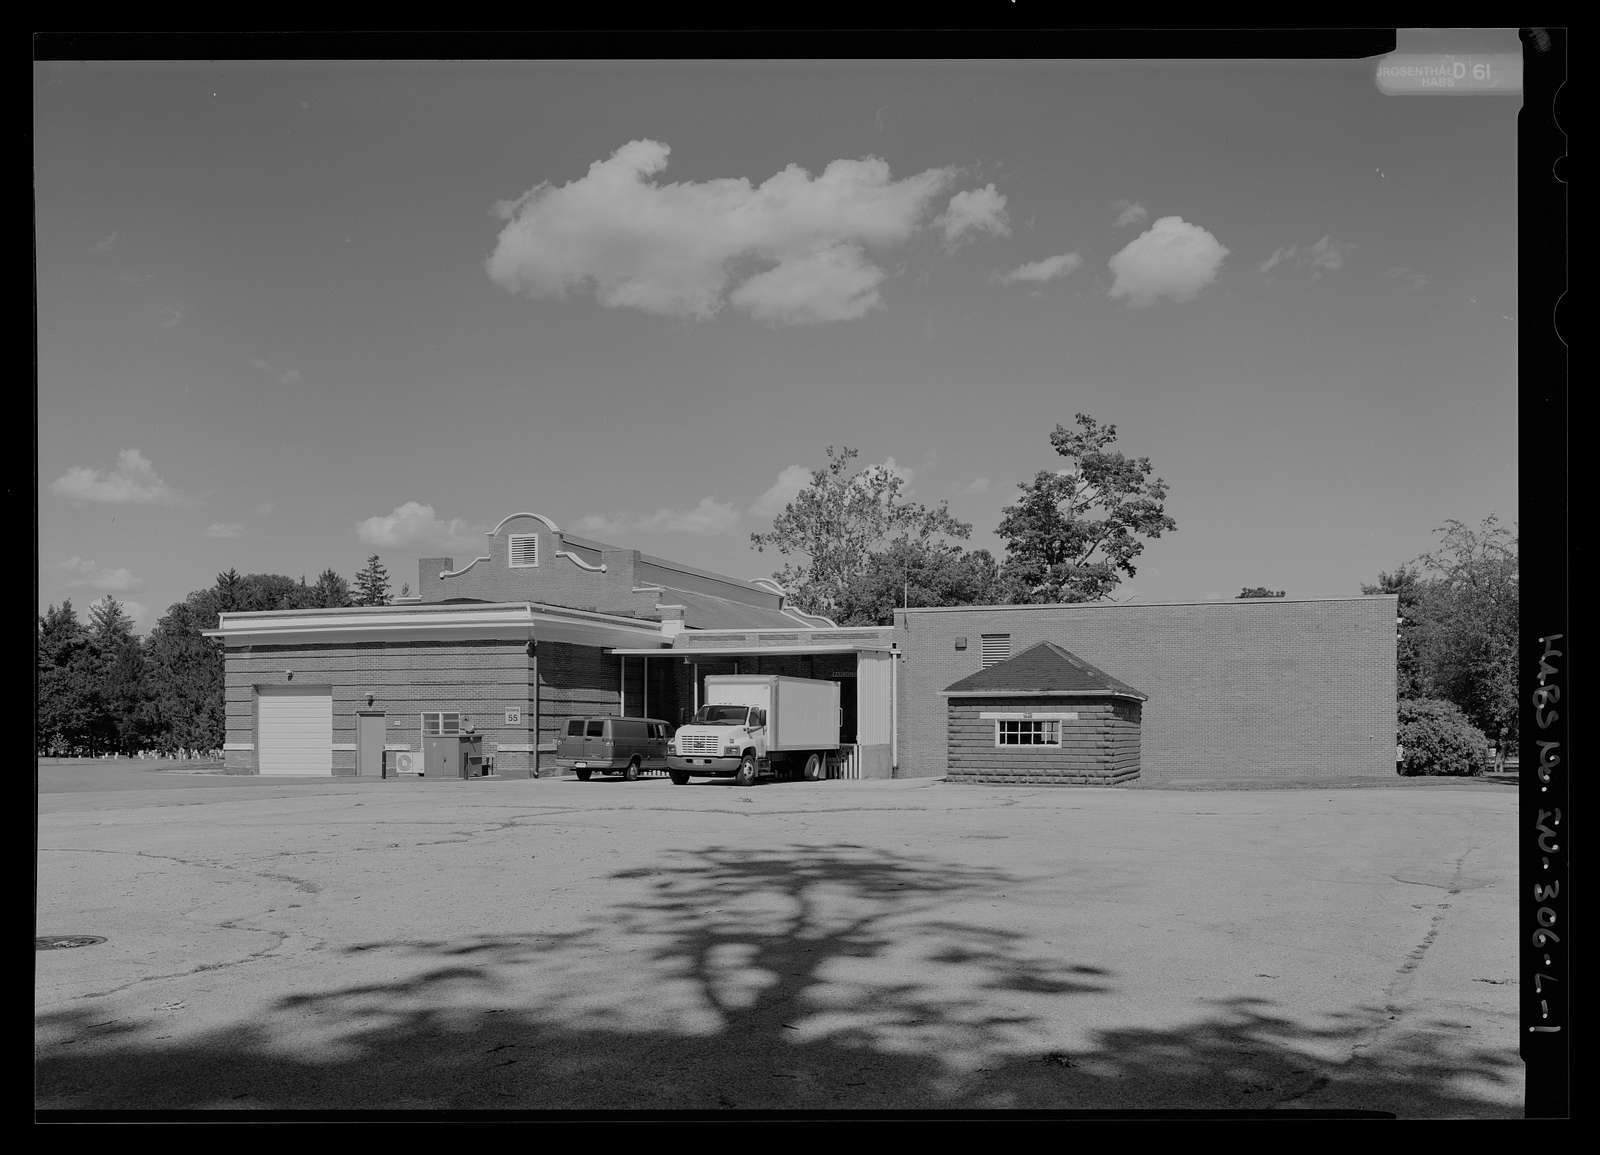 National Home for Disabled Volunteer Soldiers, Marion Branch, Building No. 55, 1700 East 38th Street, Marion, Grant County, IN